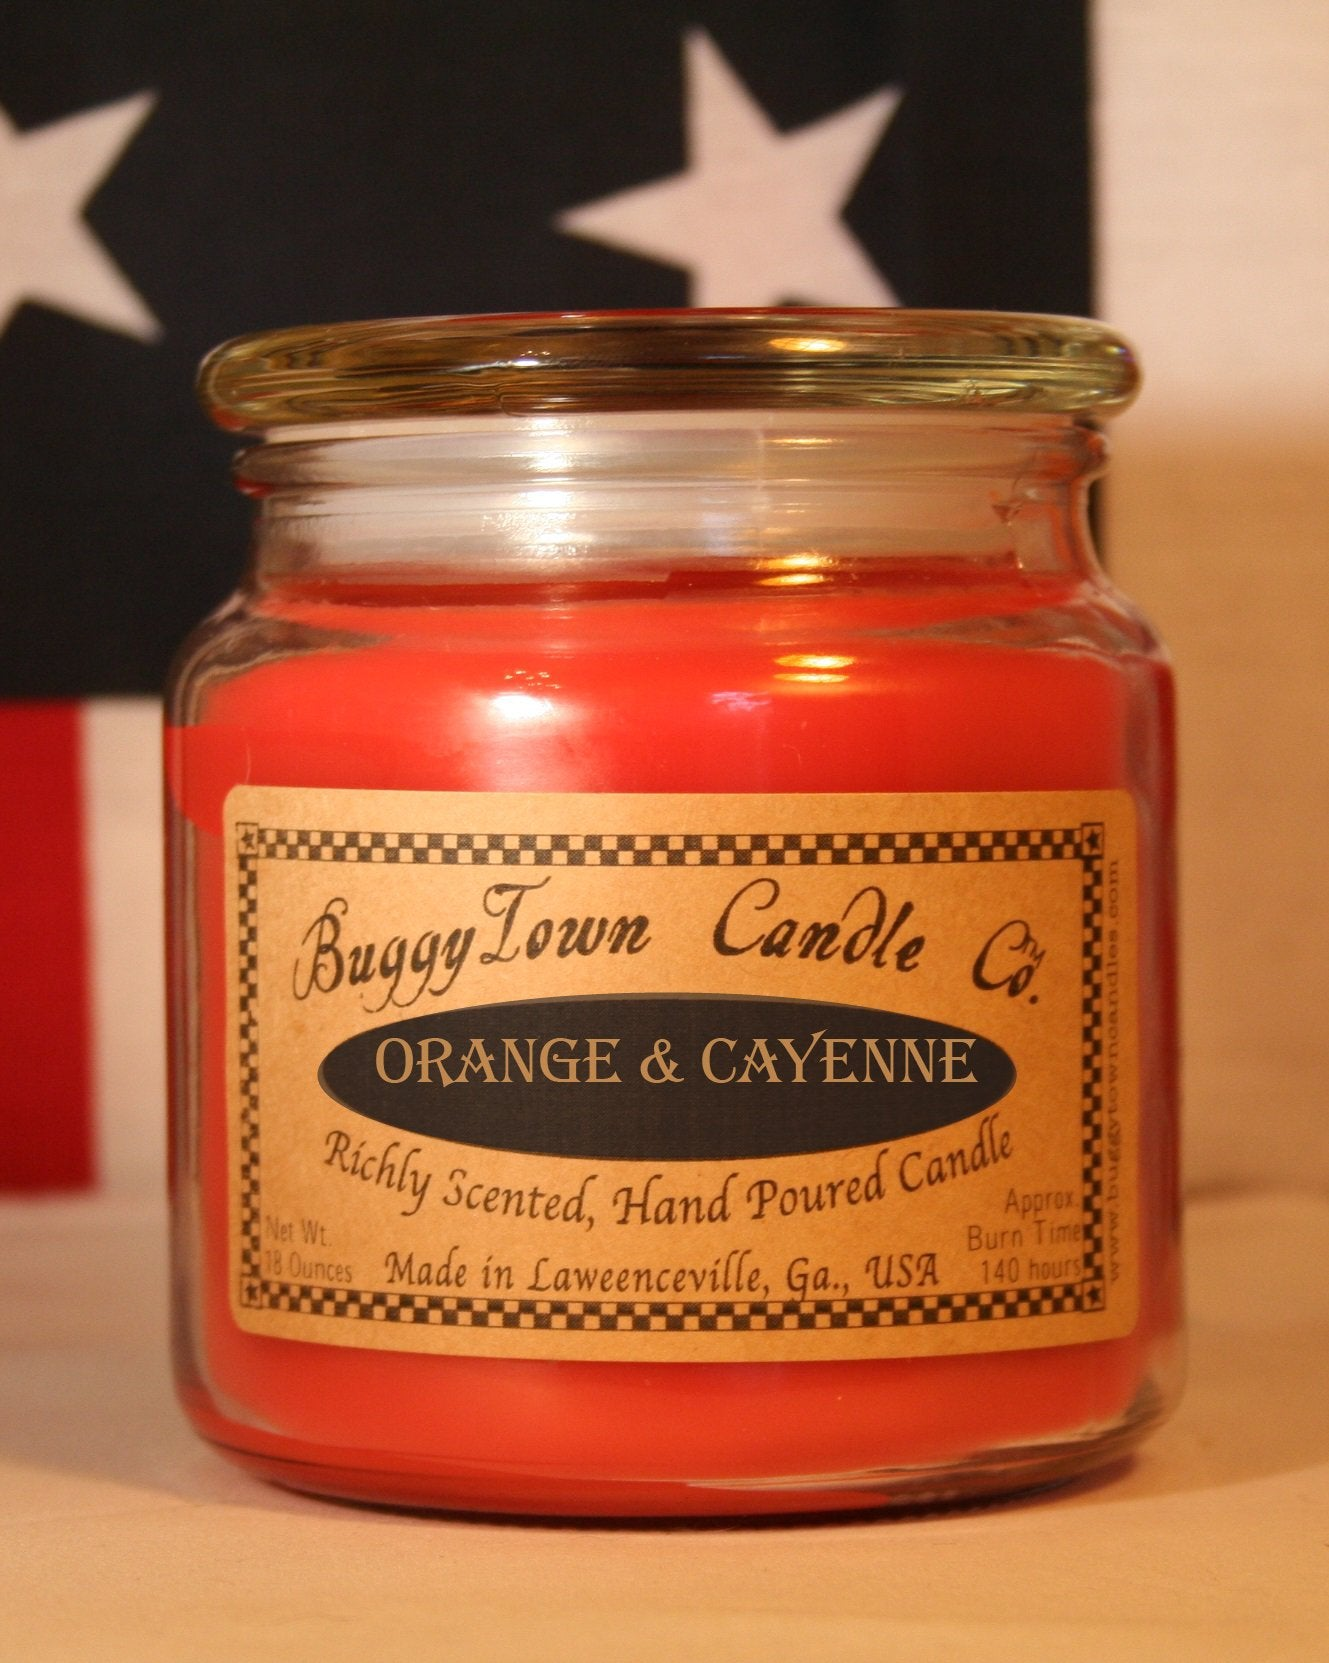 Orange & Cayenne Candles